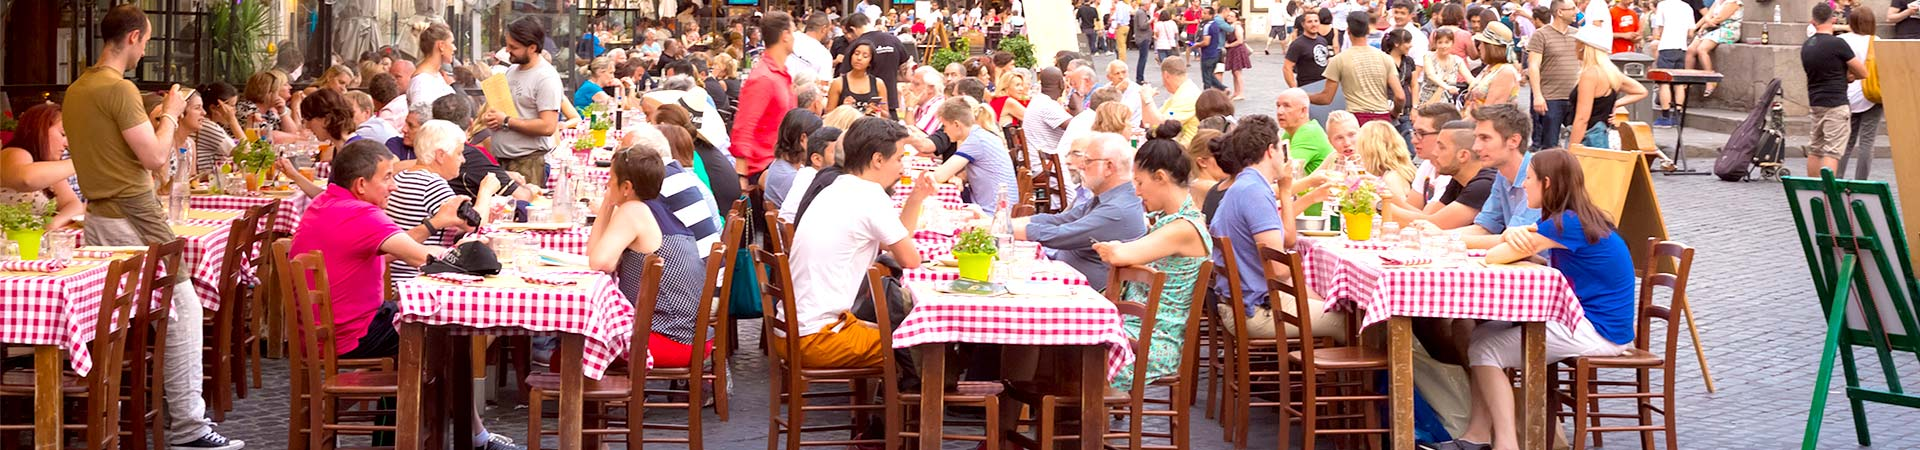 sightseeing and aperitivo tour rome